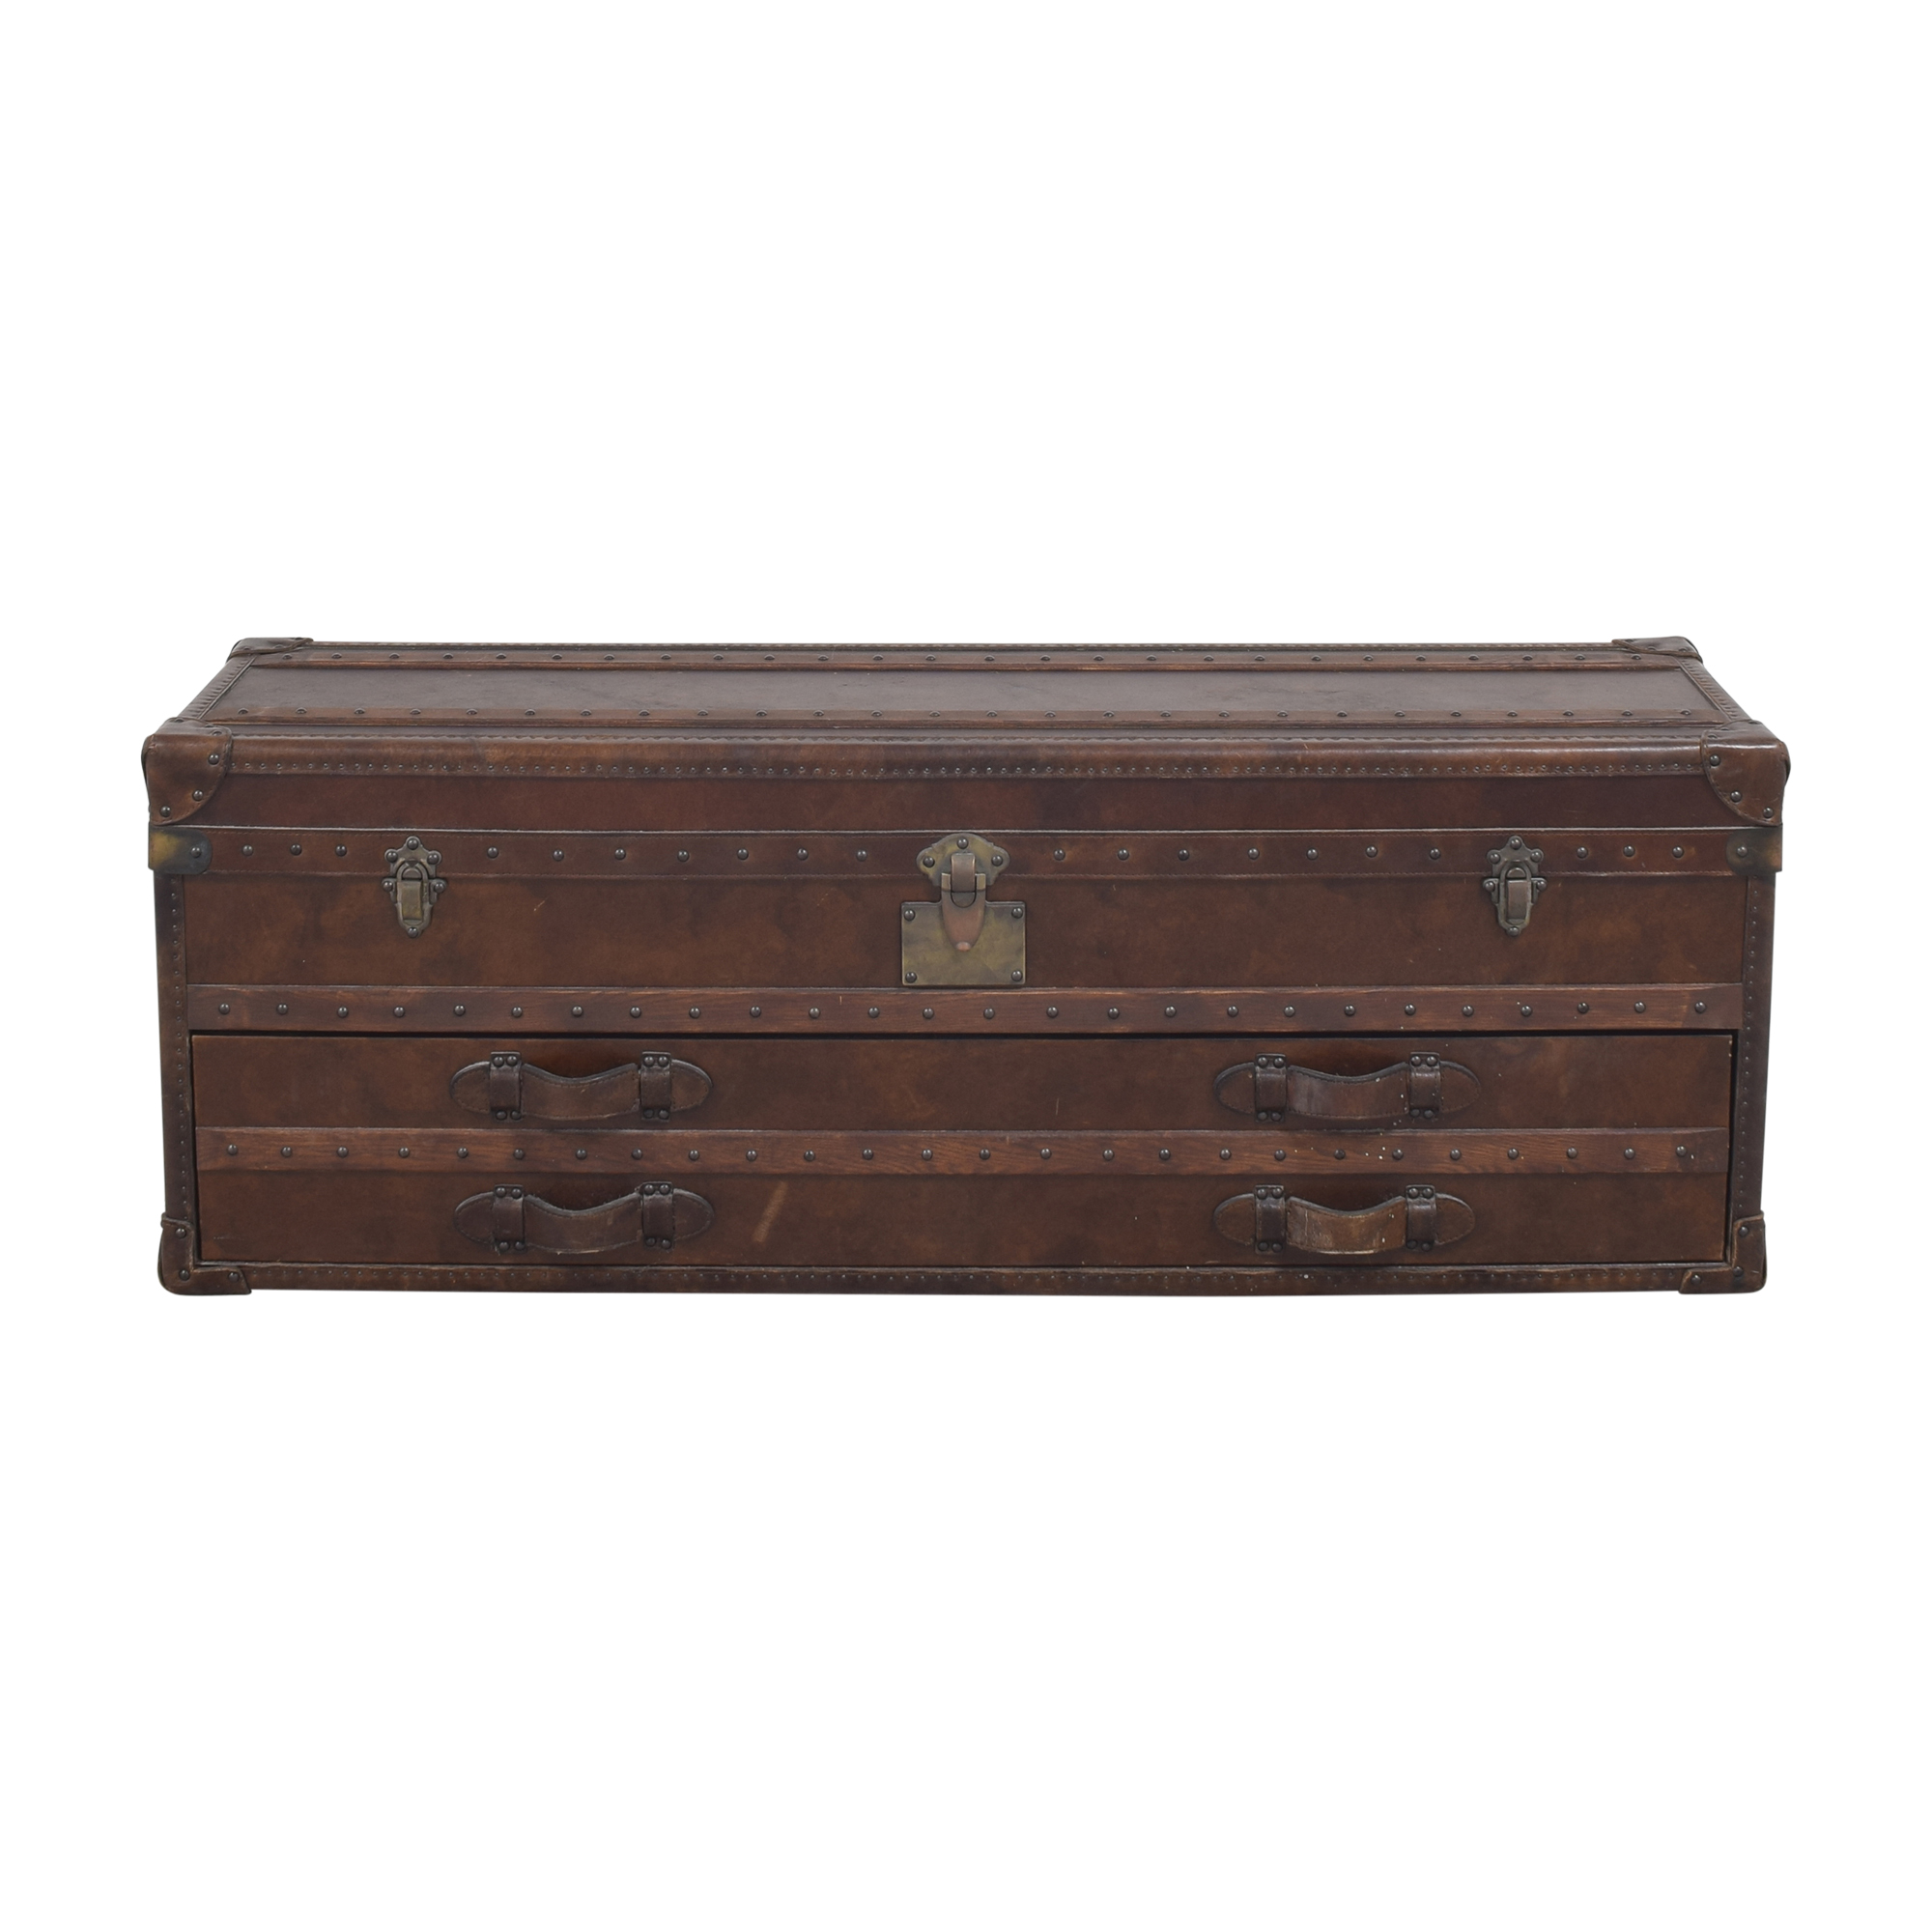 Restoration Hardware Restoration Hardware Mayfair Steamer Trunk Low Chest dimensions